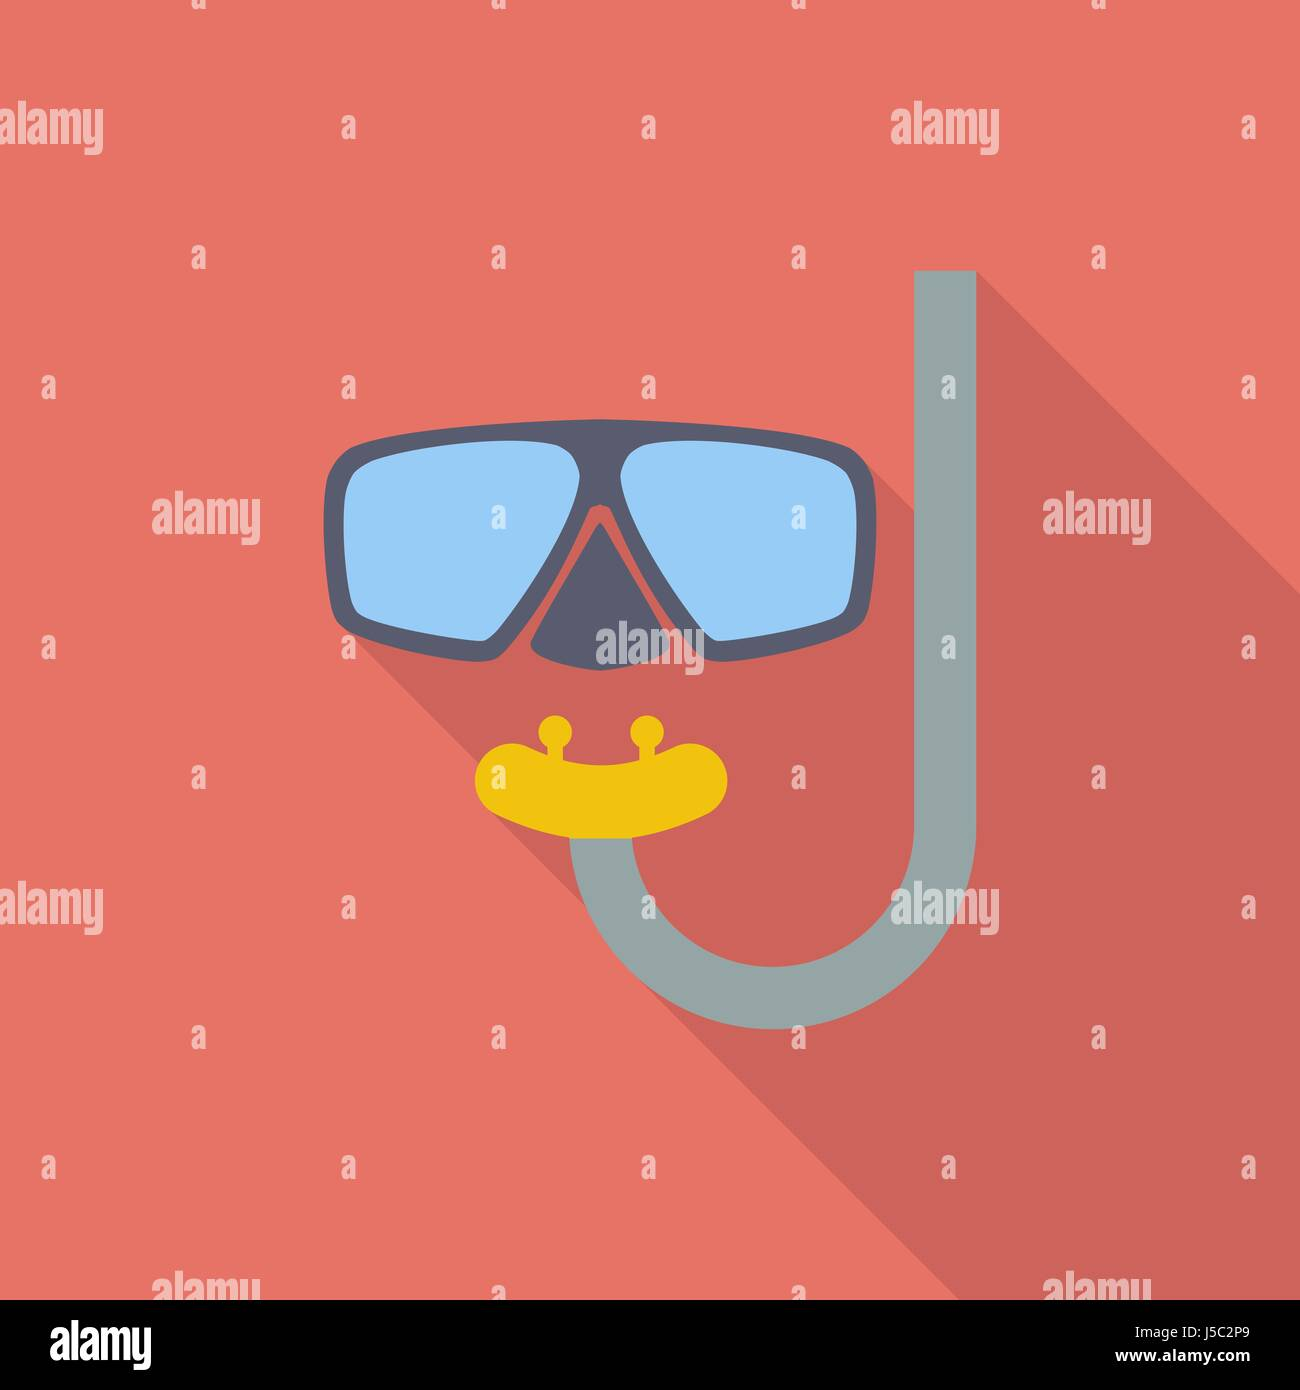 Diving icon. Flat vector related icon with long shadow for web and mobile applications. It can be used as - logo, - Stock Image